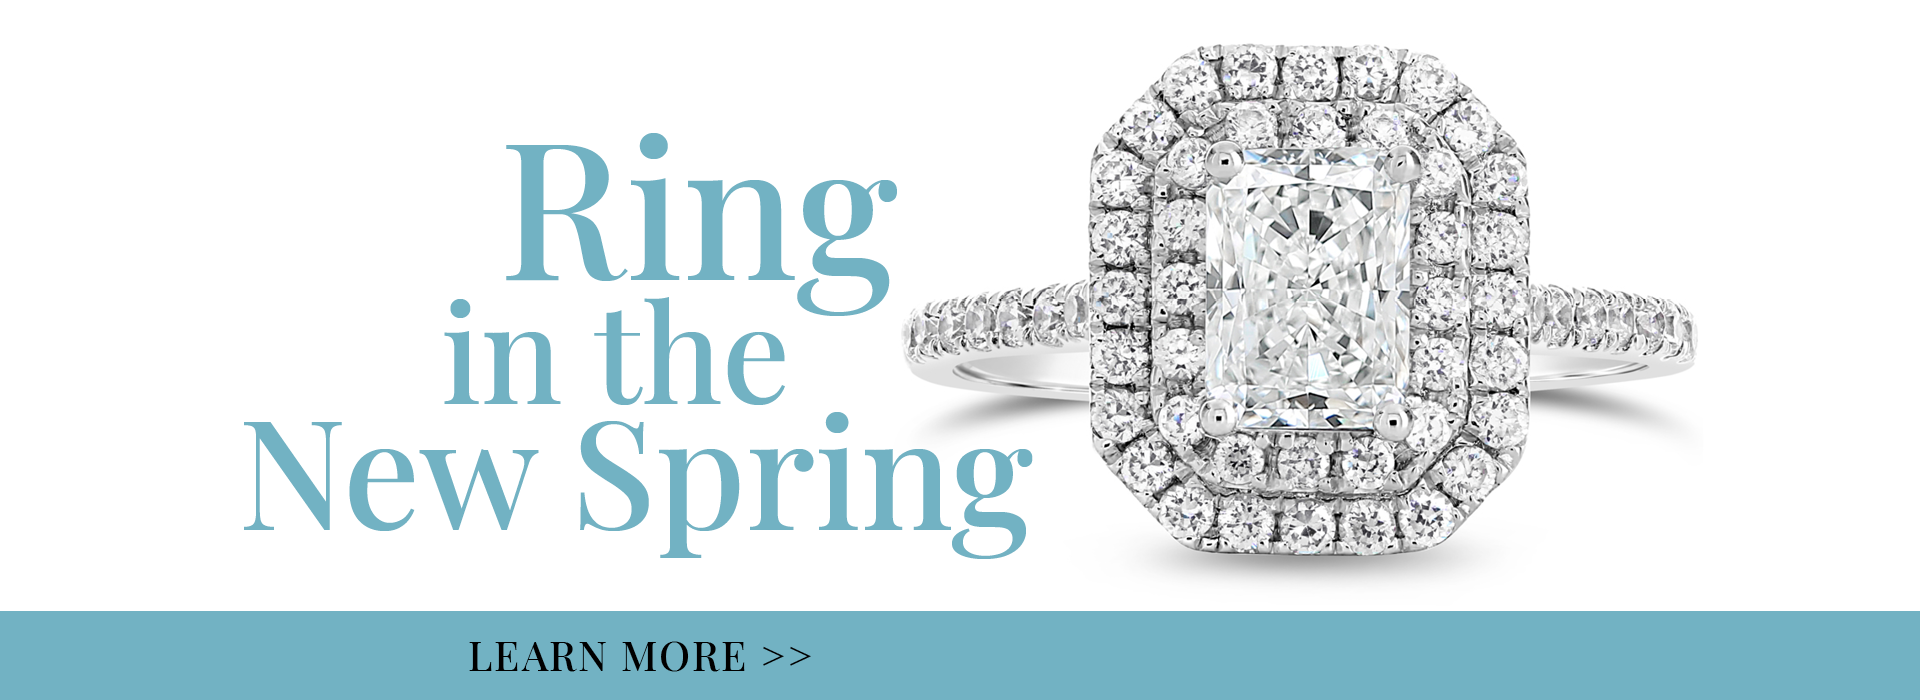 Ring in the new Spring